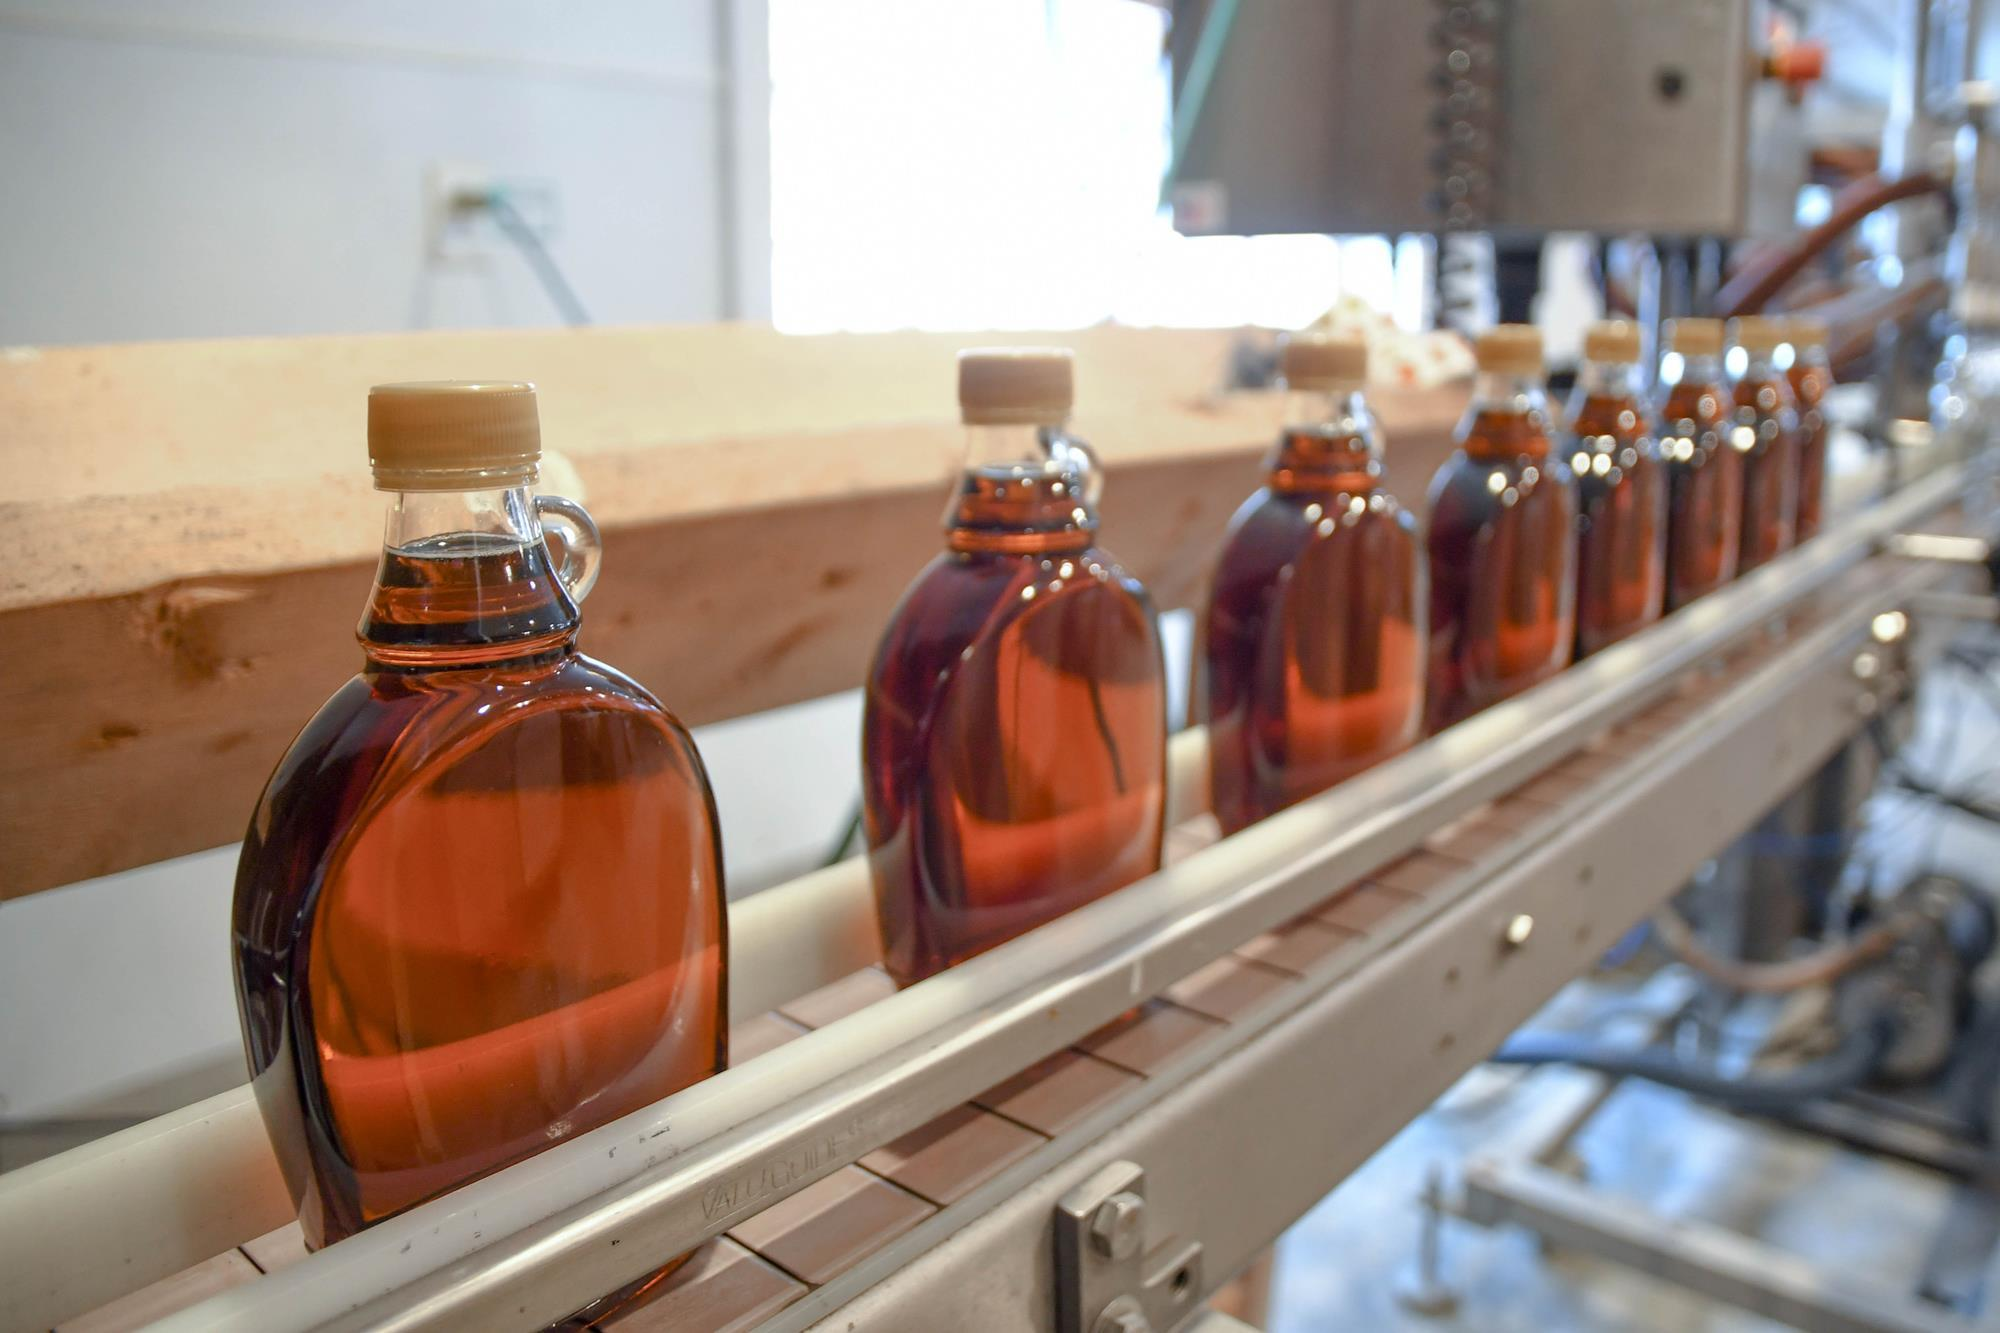 Sugar shack test set to flip procedure for maple syrup quality control thumbnail